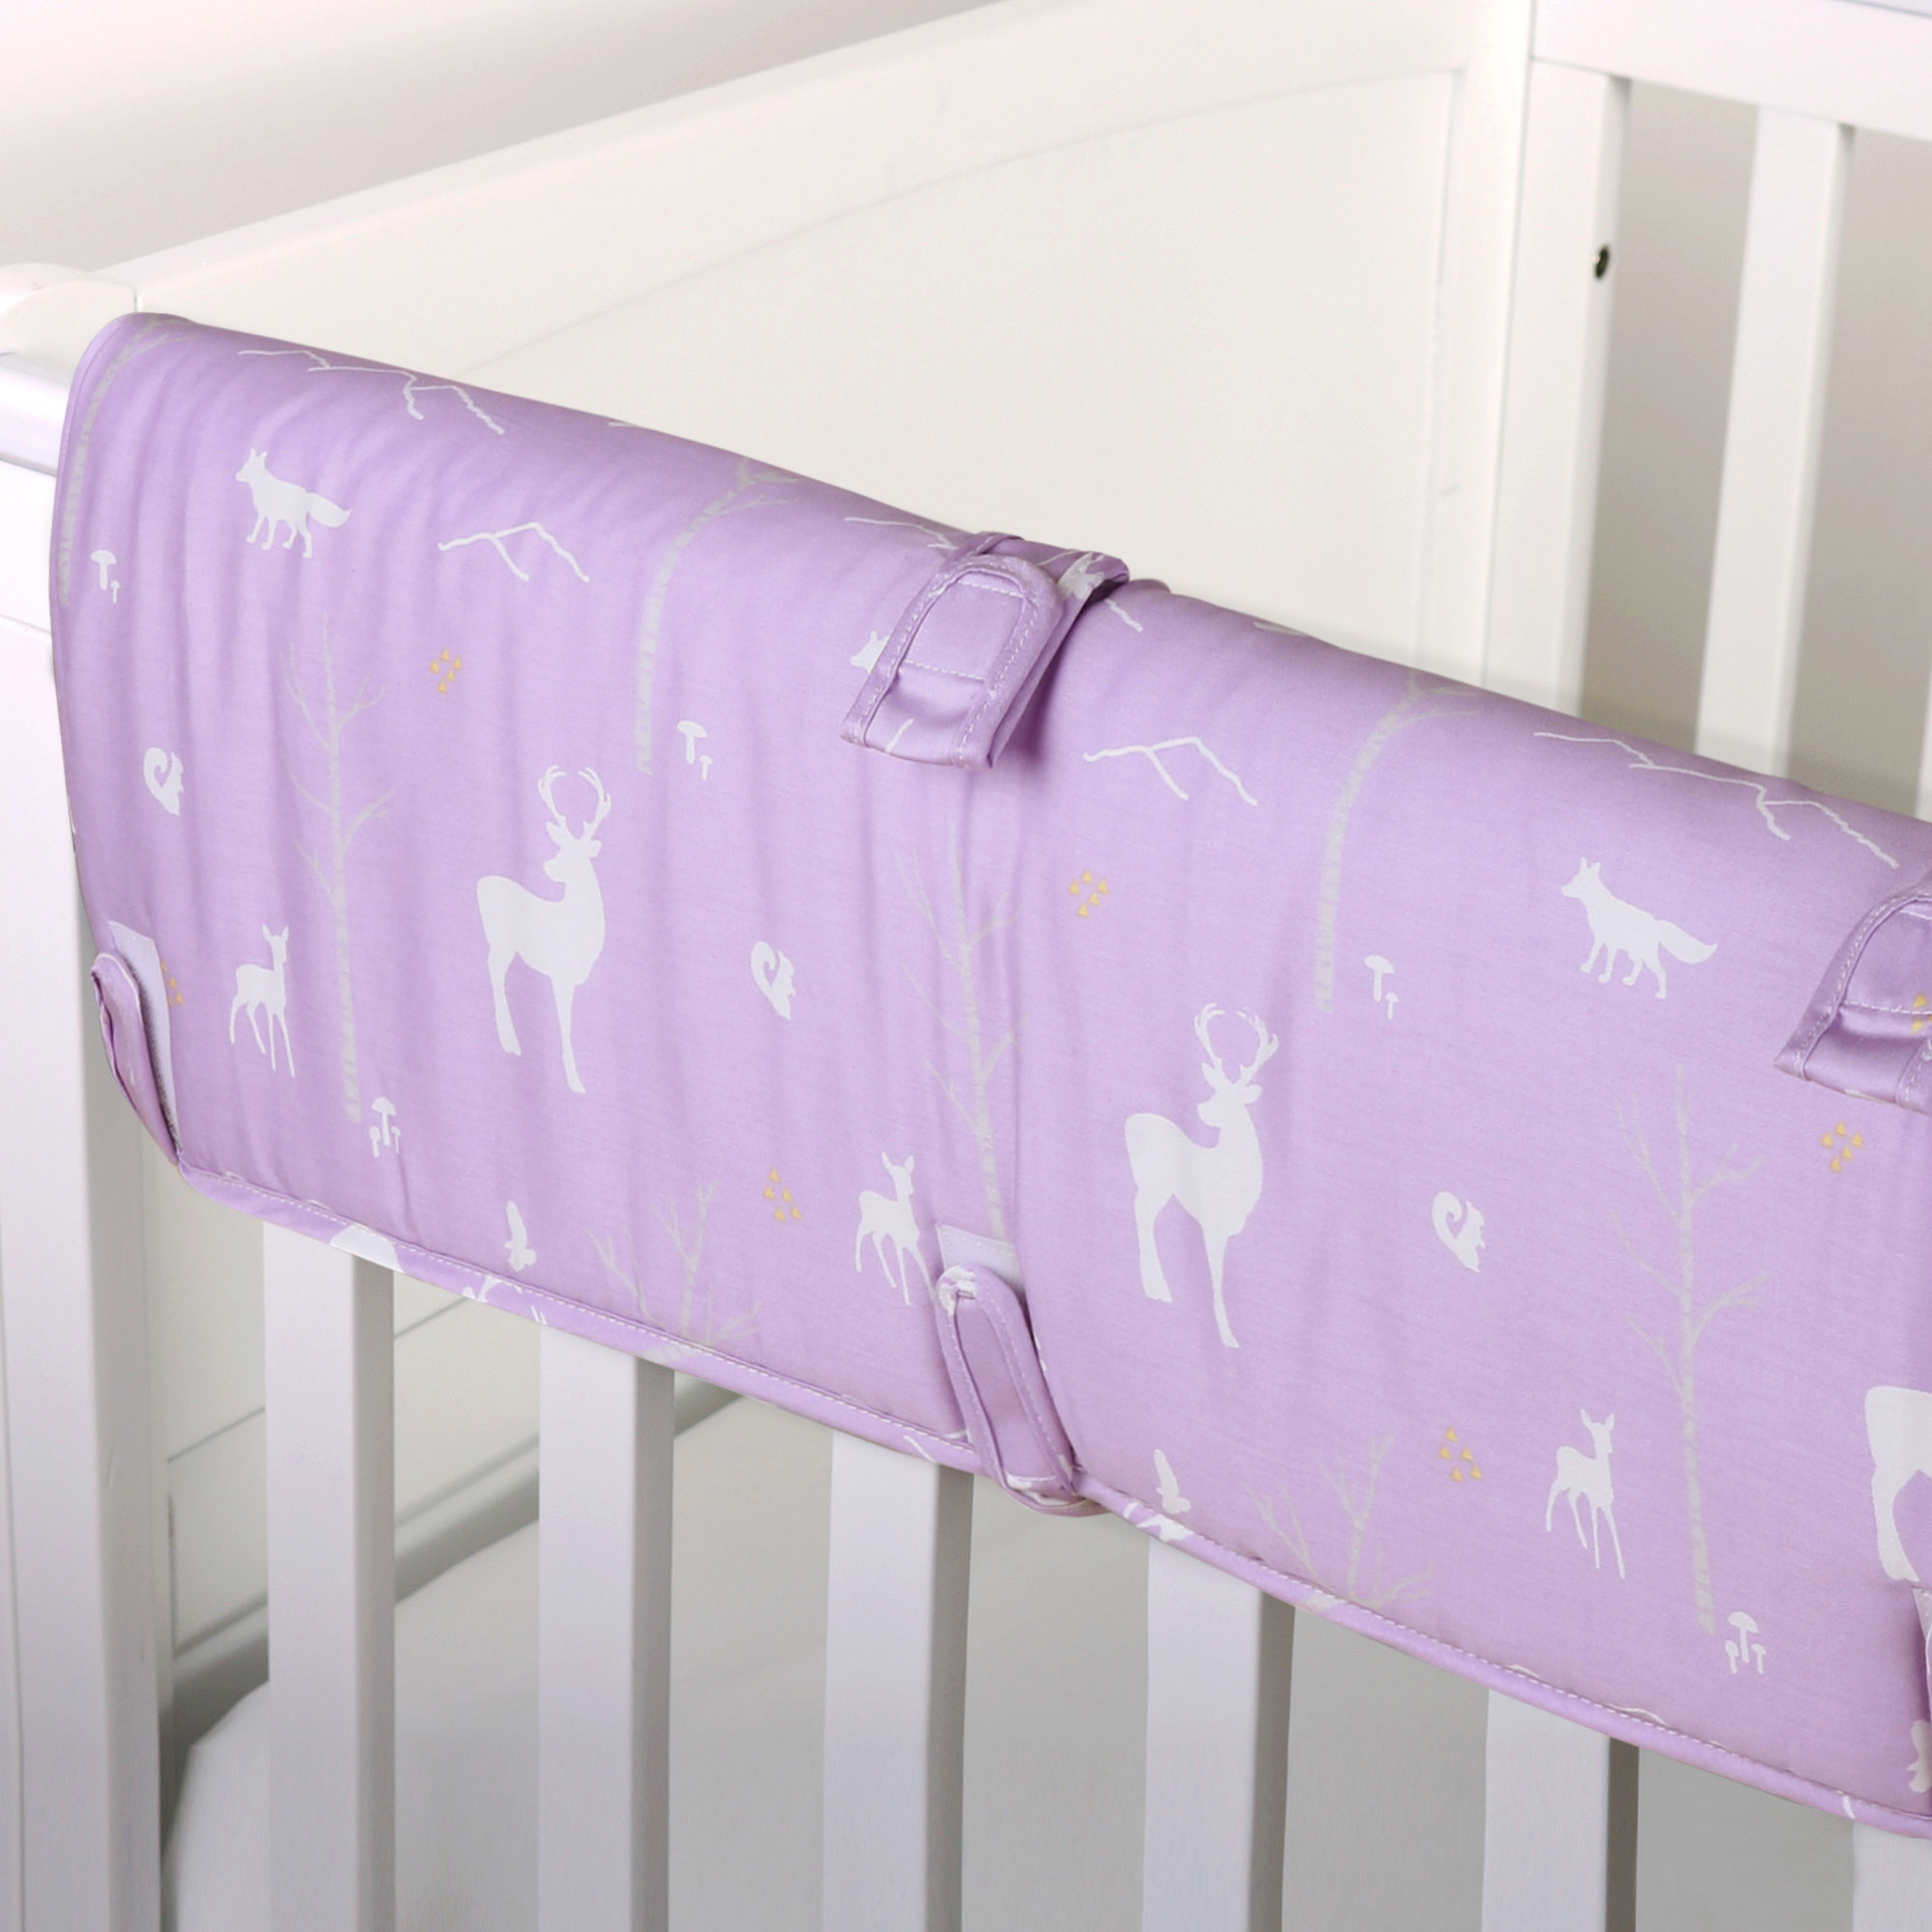 The Peanut Shell Baby Crib Rail Guard - Purple Woodland Forest Animal Print - 100% Cotton Sateen Cover, Polyester Fill